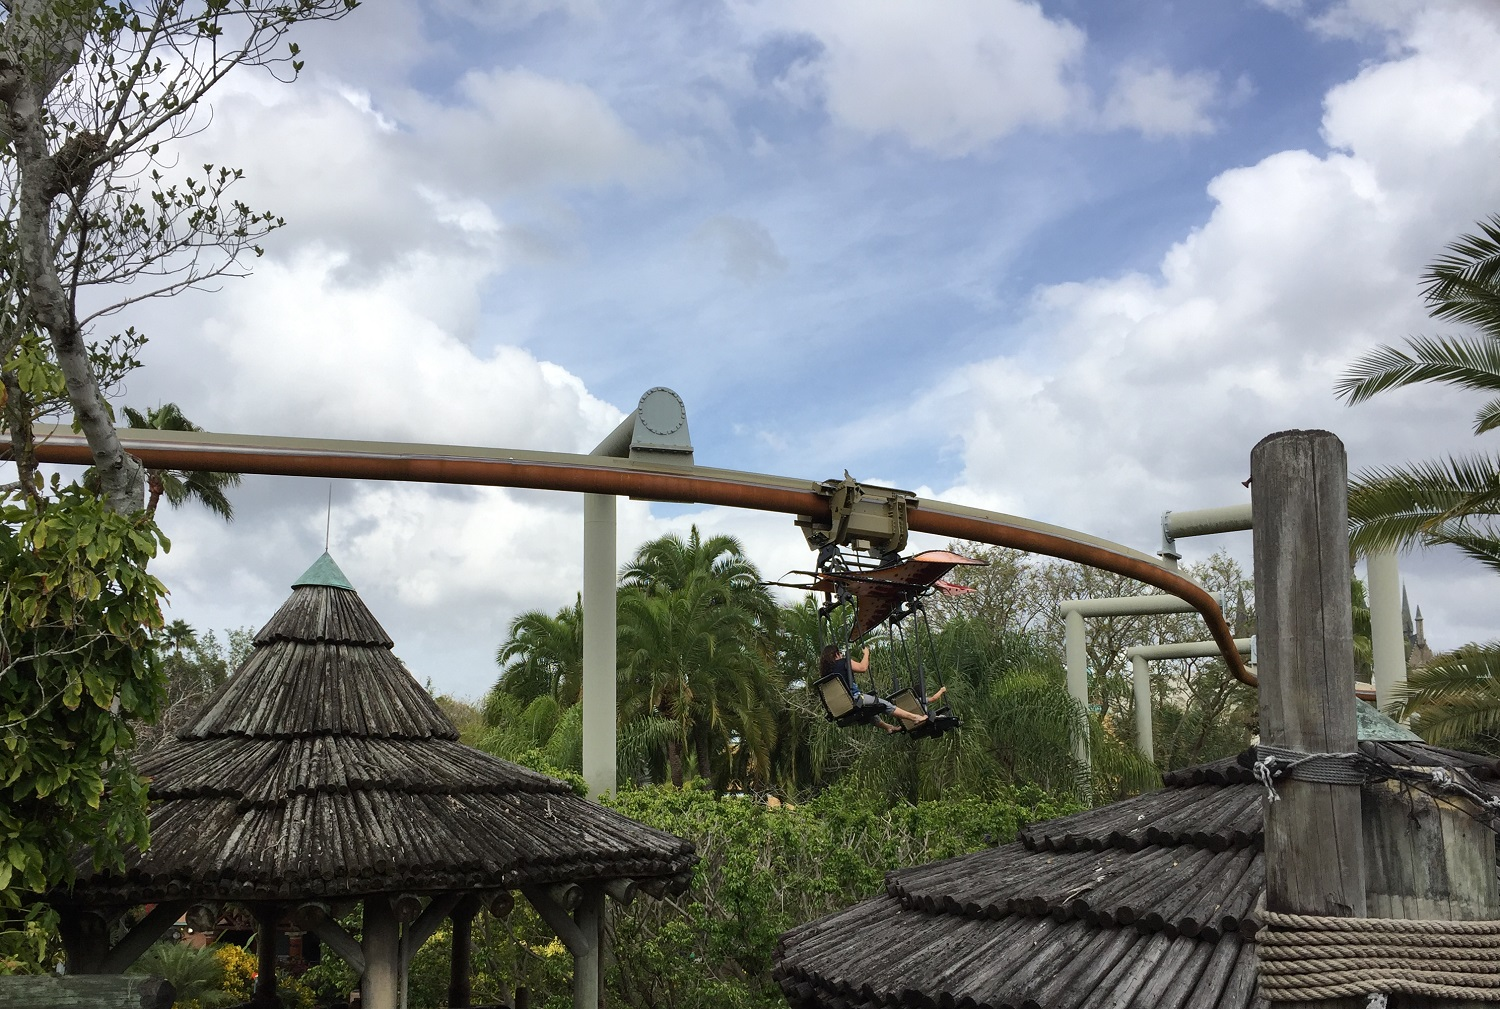 The Pteranodon Flyers ride vehicles are shaped like prehistoric reptiles with wings.